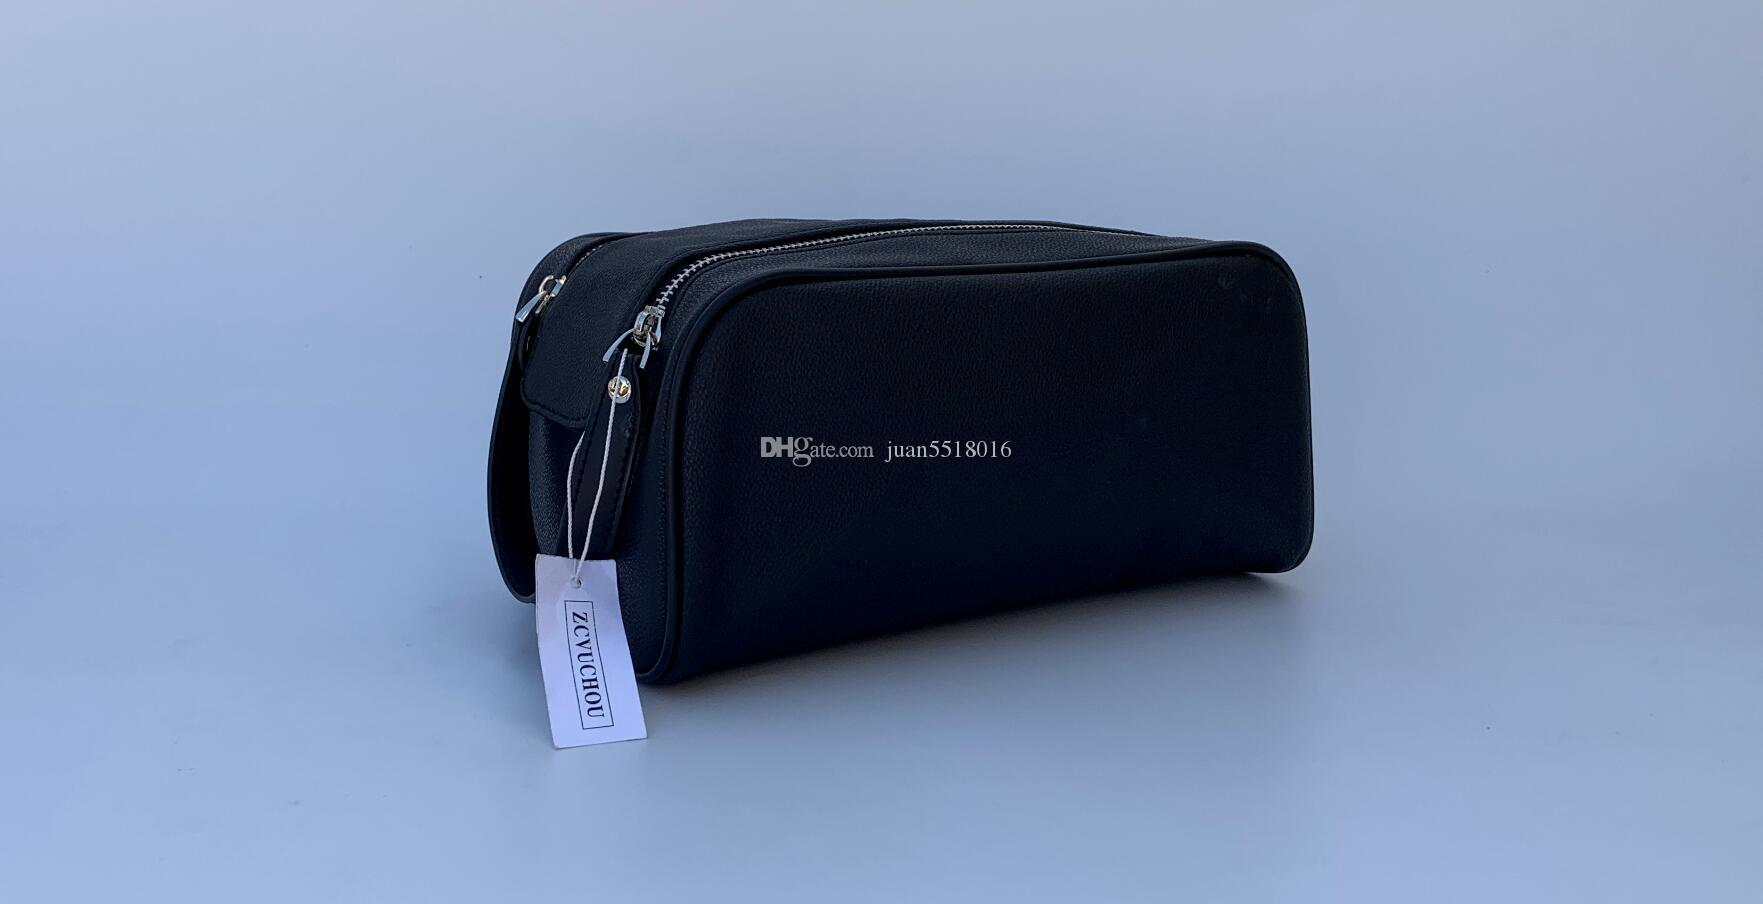 2019 High-end quality men 26CM travelling toilet bag fashion design women wash bag large capacity cosmetic bags makeup toiletry bag Pouch